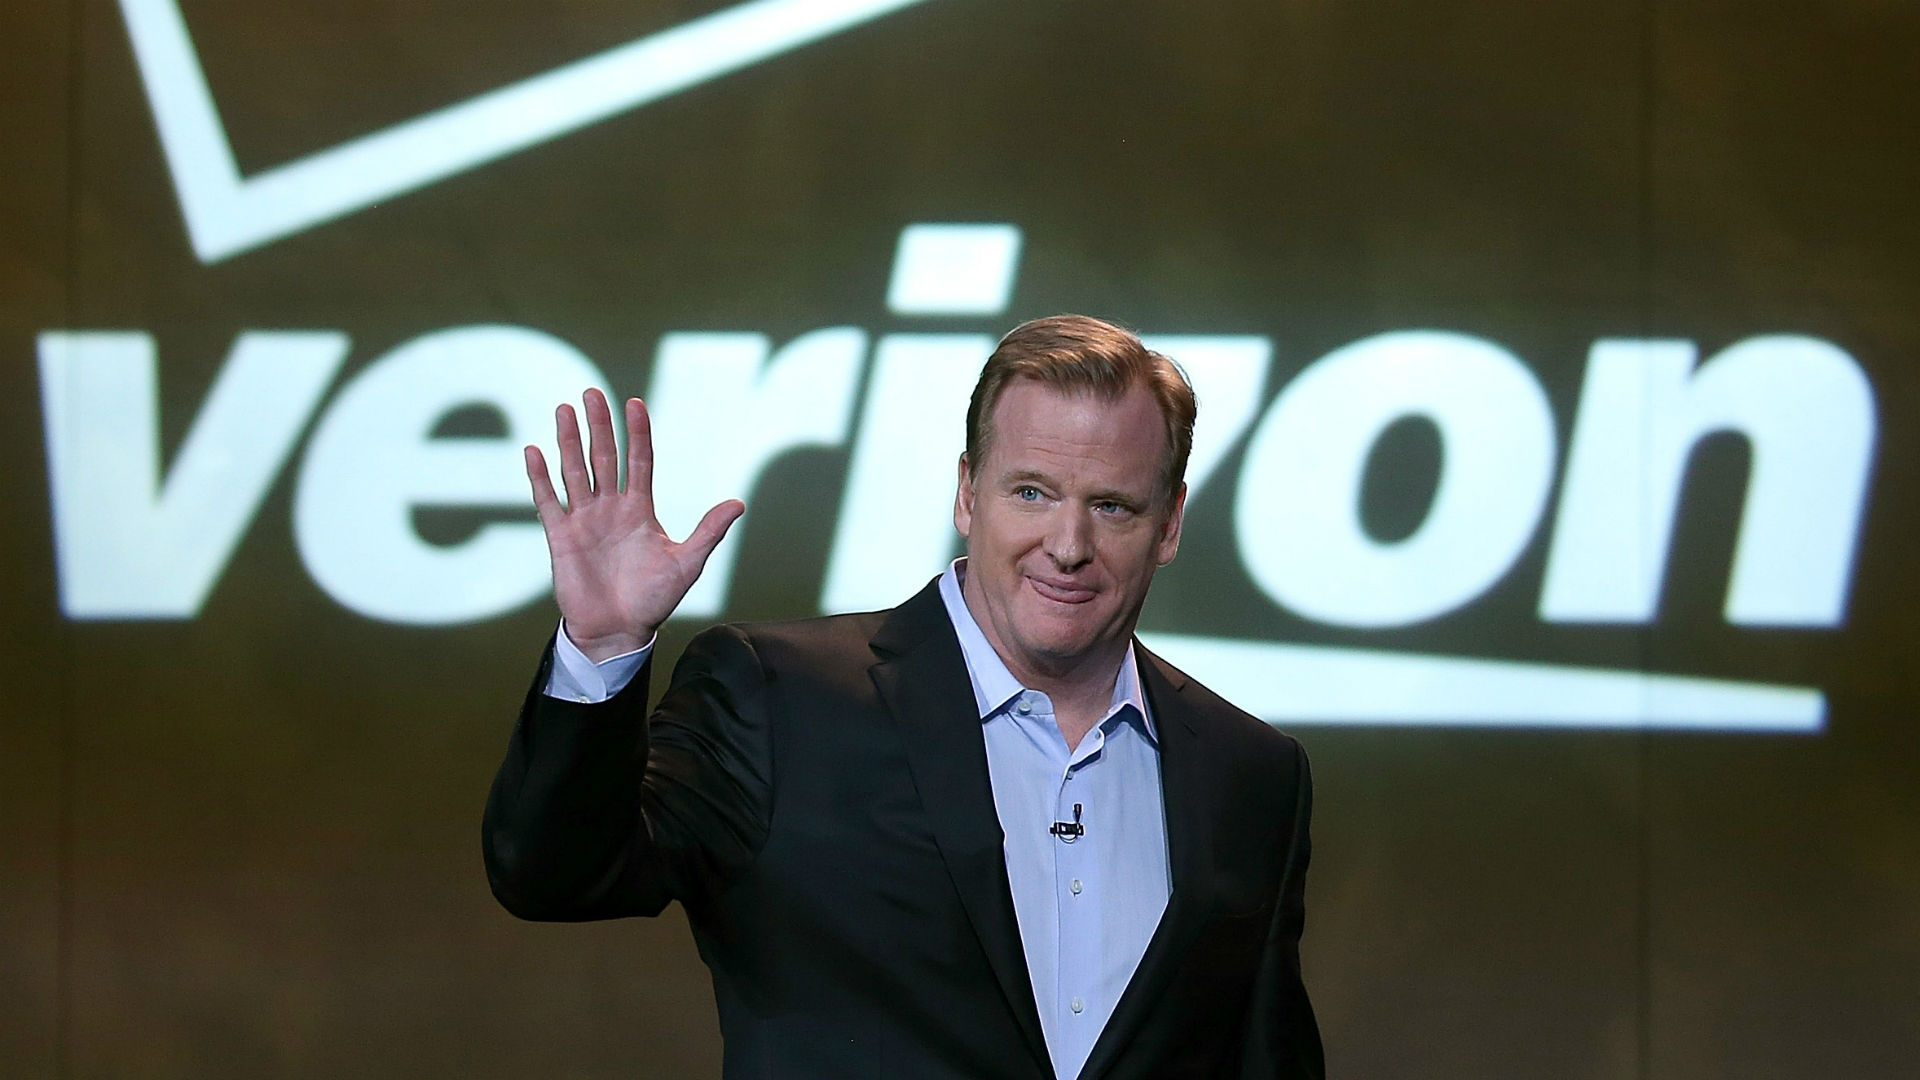 Why Verizon Paid The NFL $21 Million To Broadcast A Lackluster Game